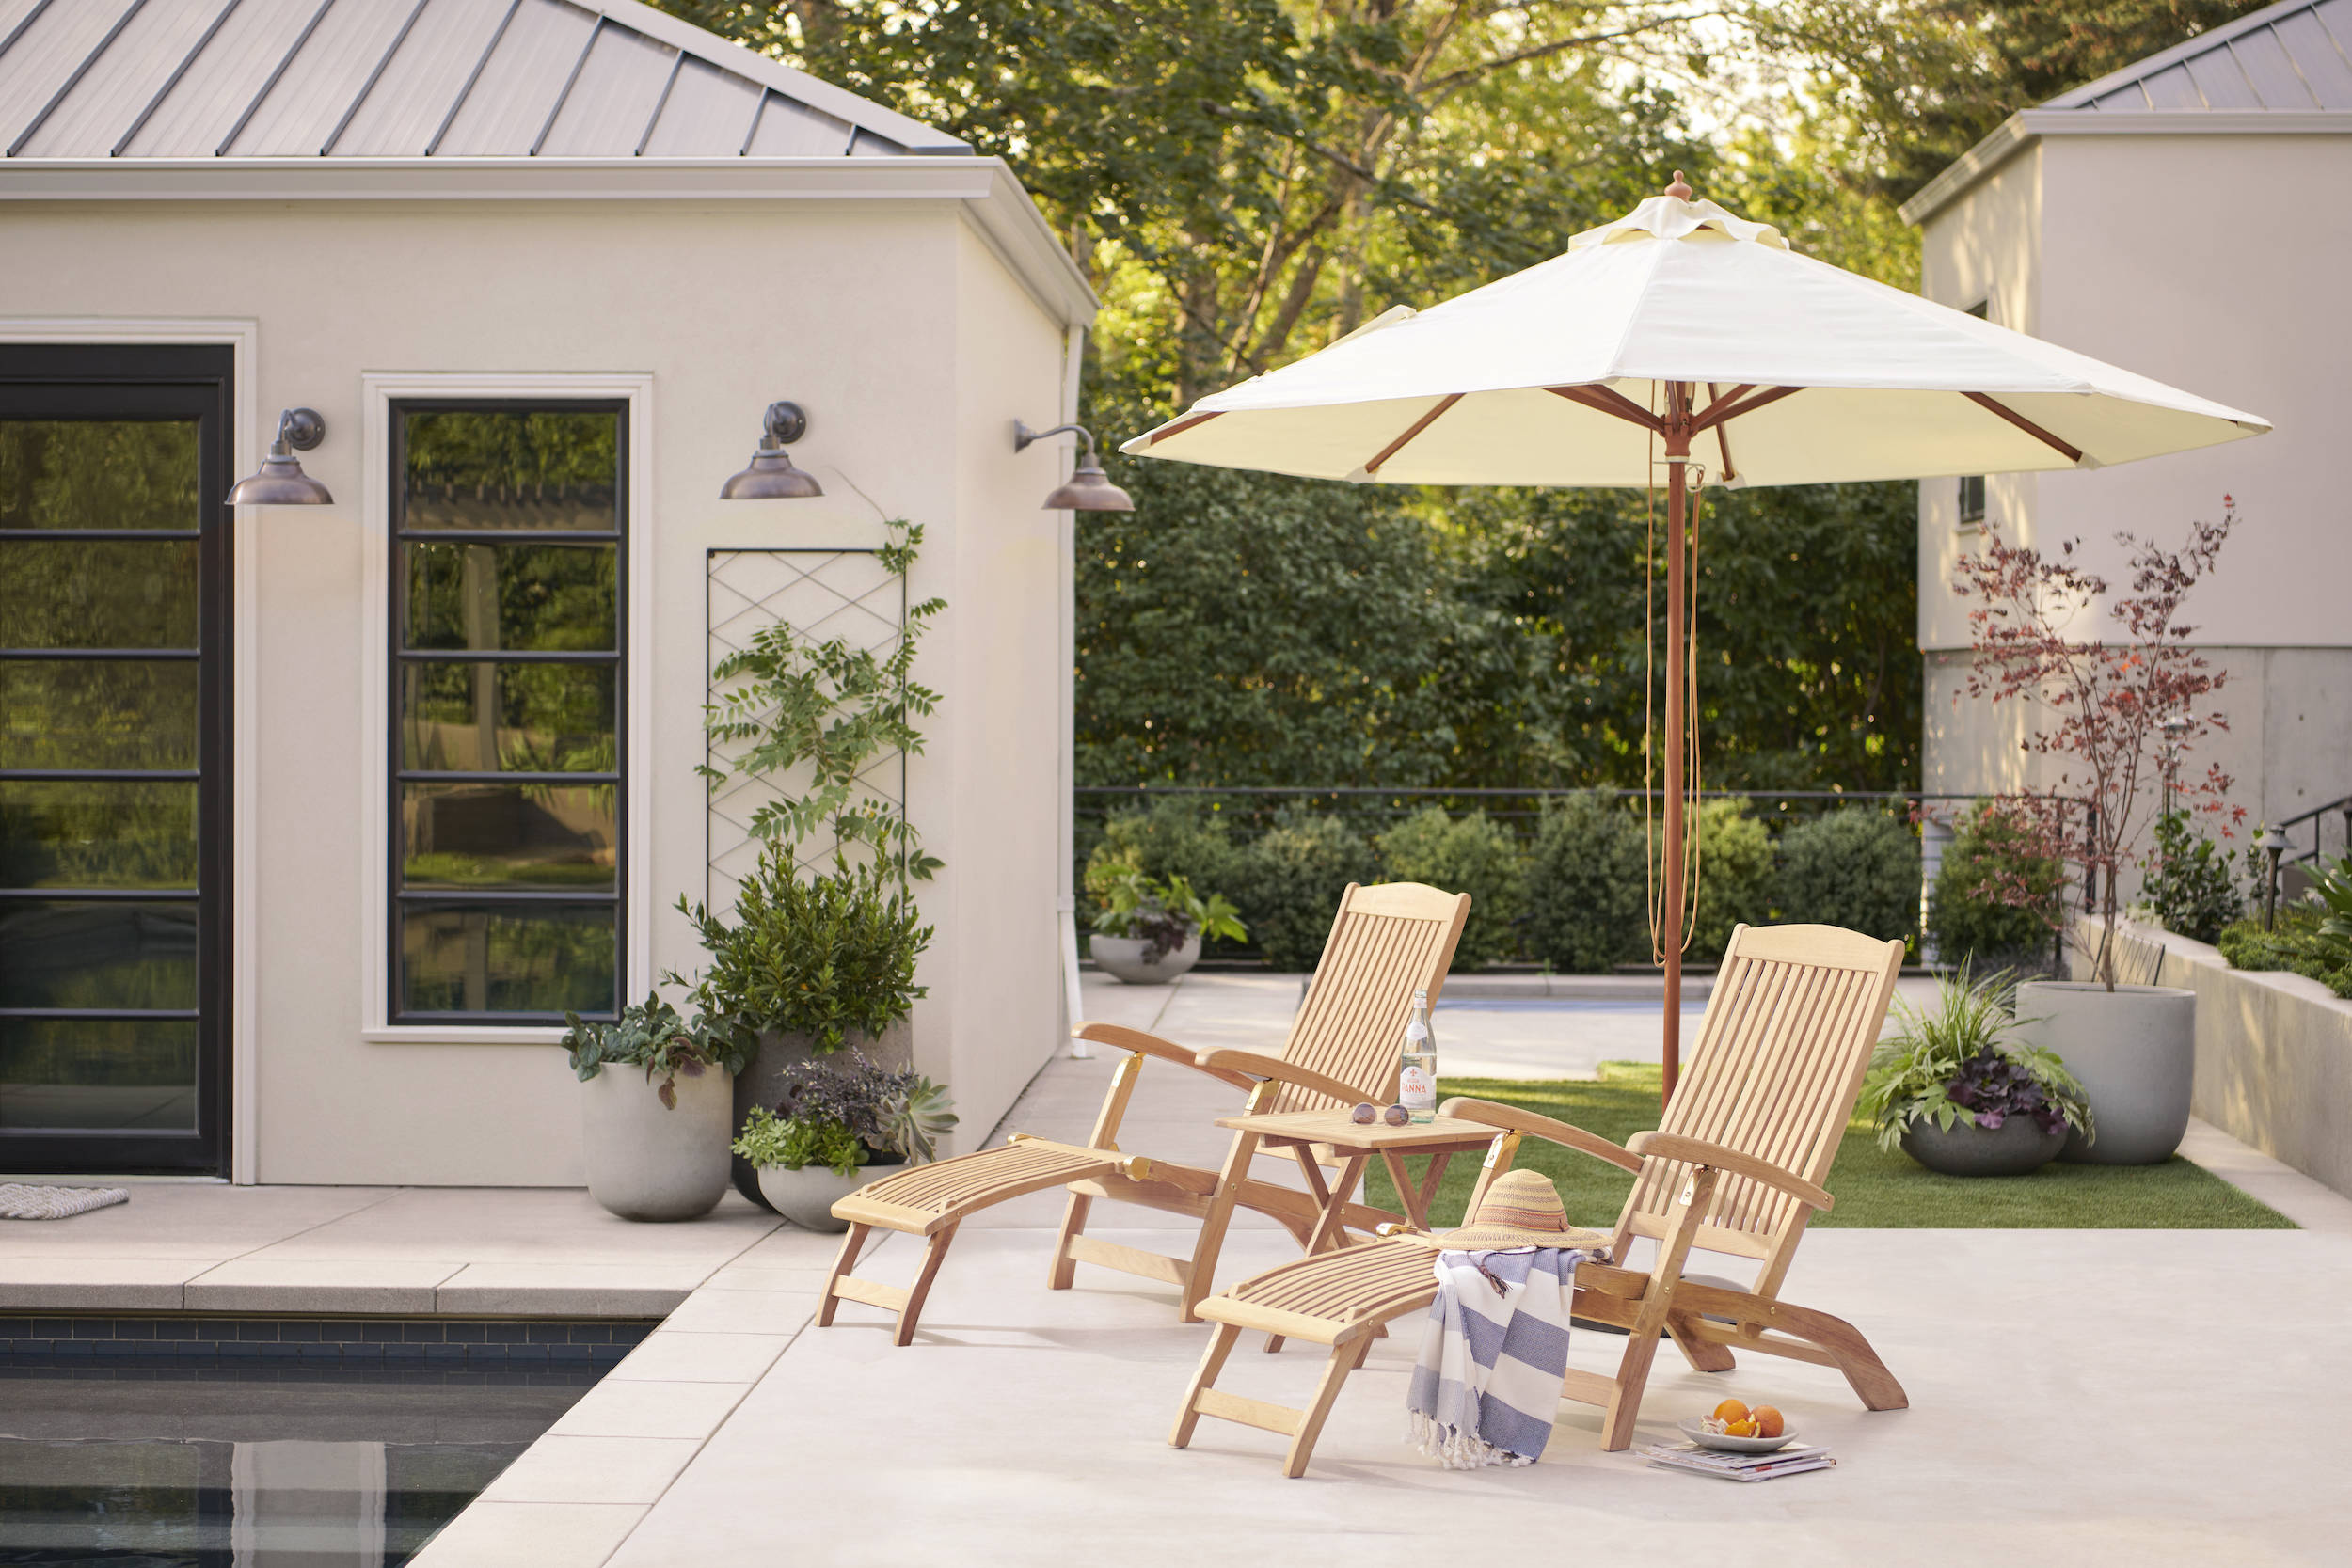 The perfect warm-weather change of scenery: lounging outdoors. The Teak & Brass Folding Lounge Chairs ($src=